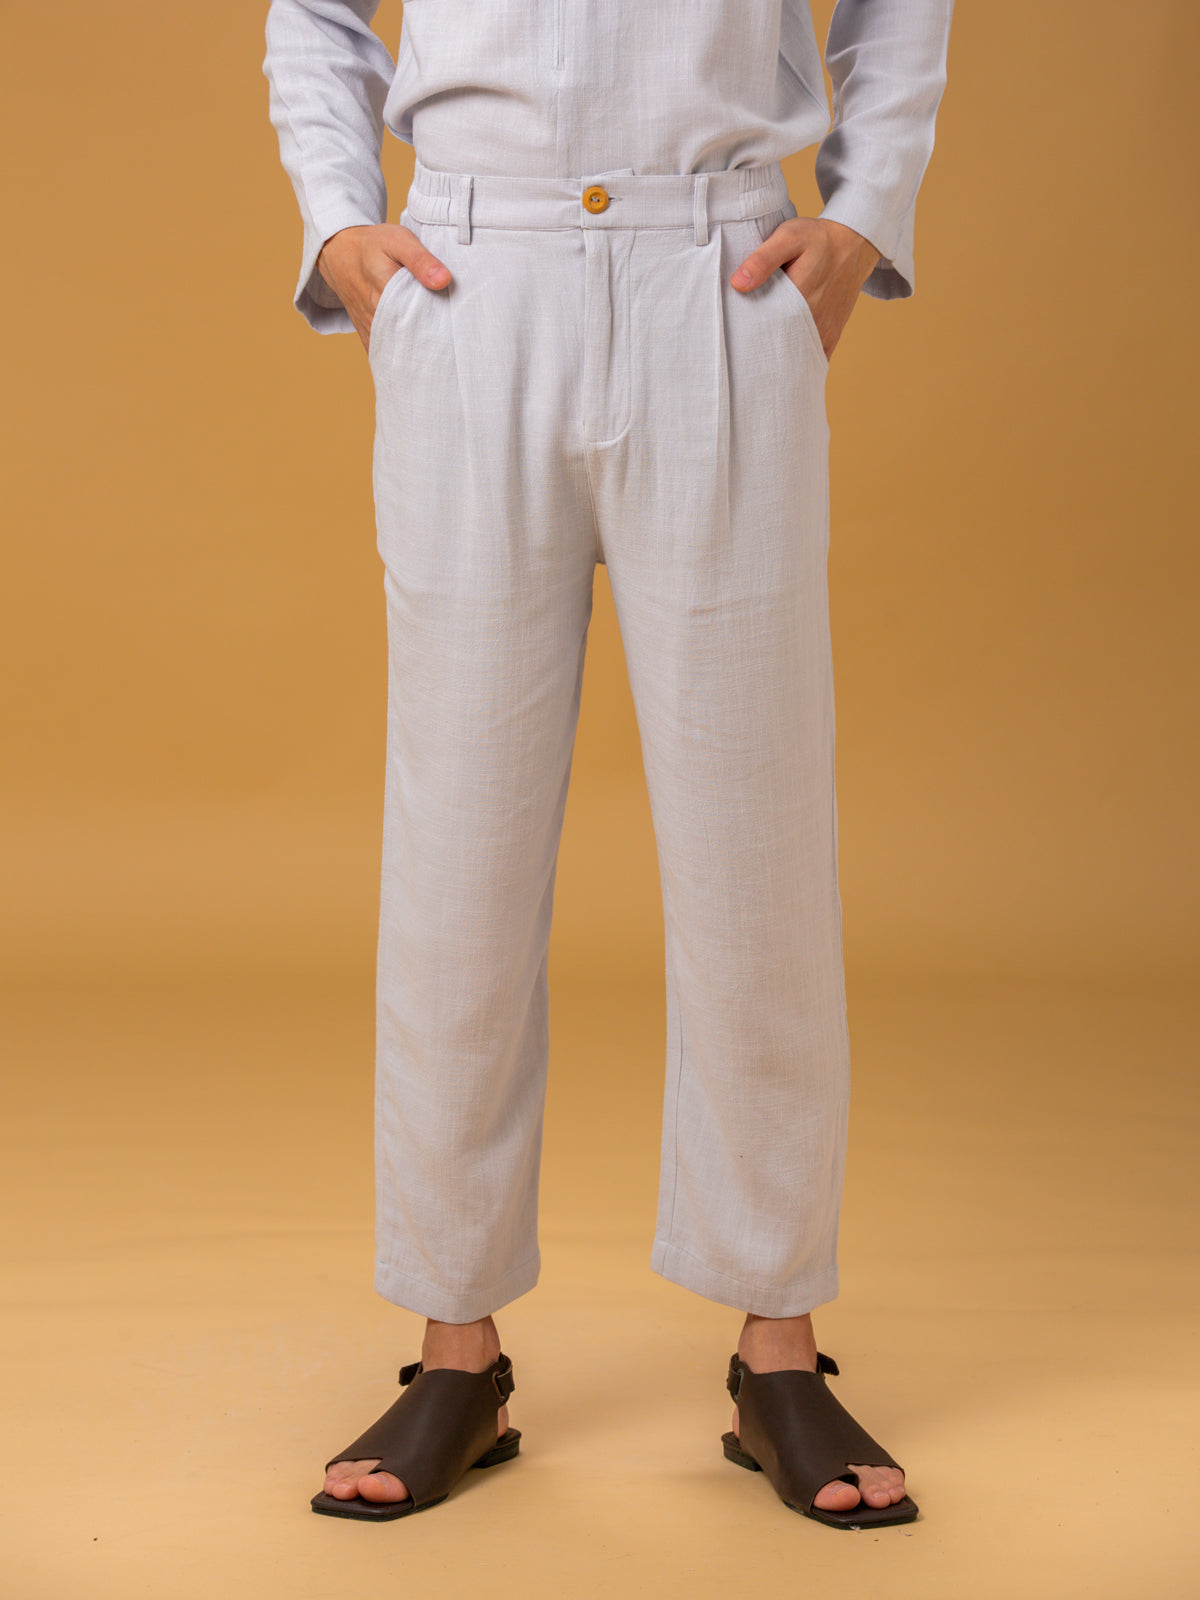 Unisex: Desir Tapered Pants (Sky Blue)